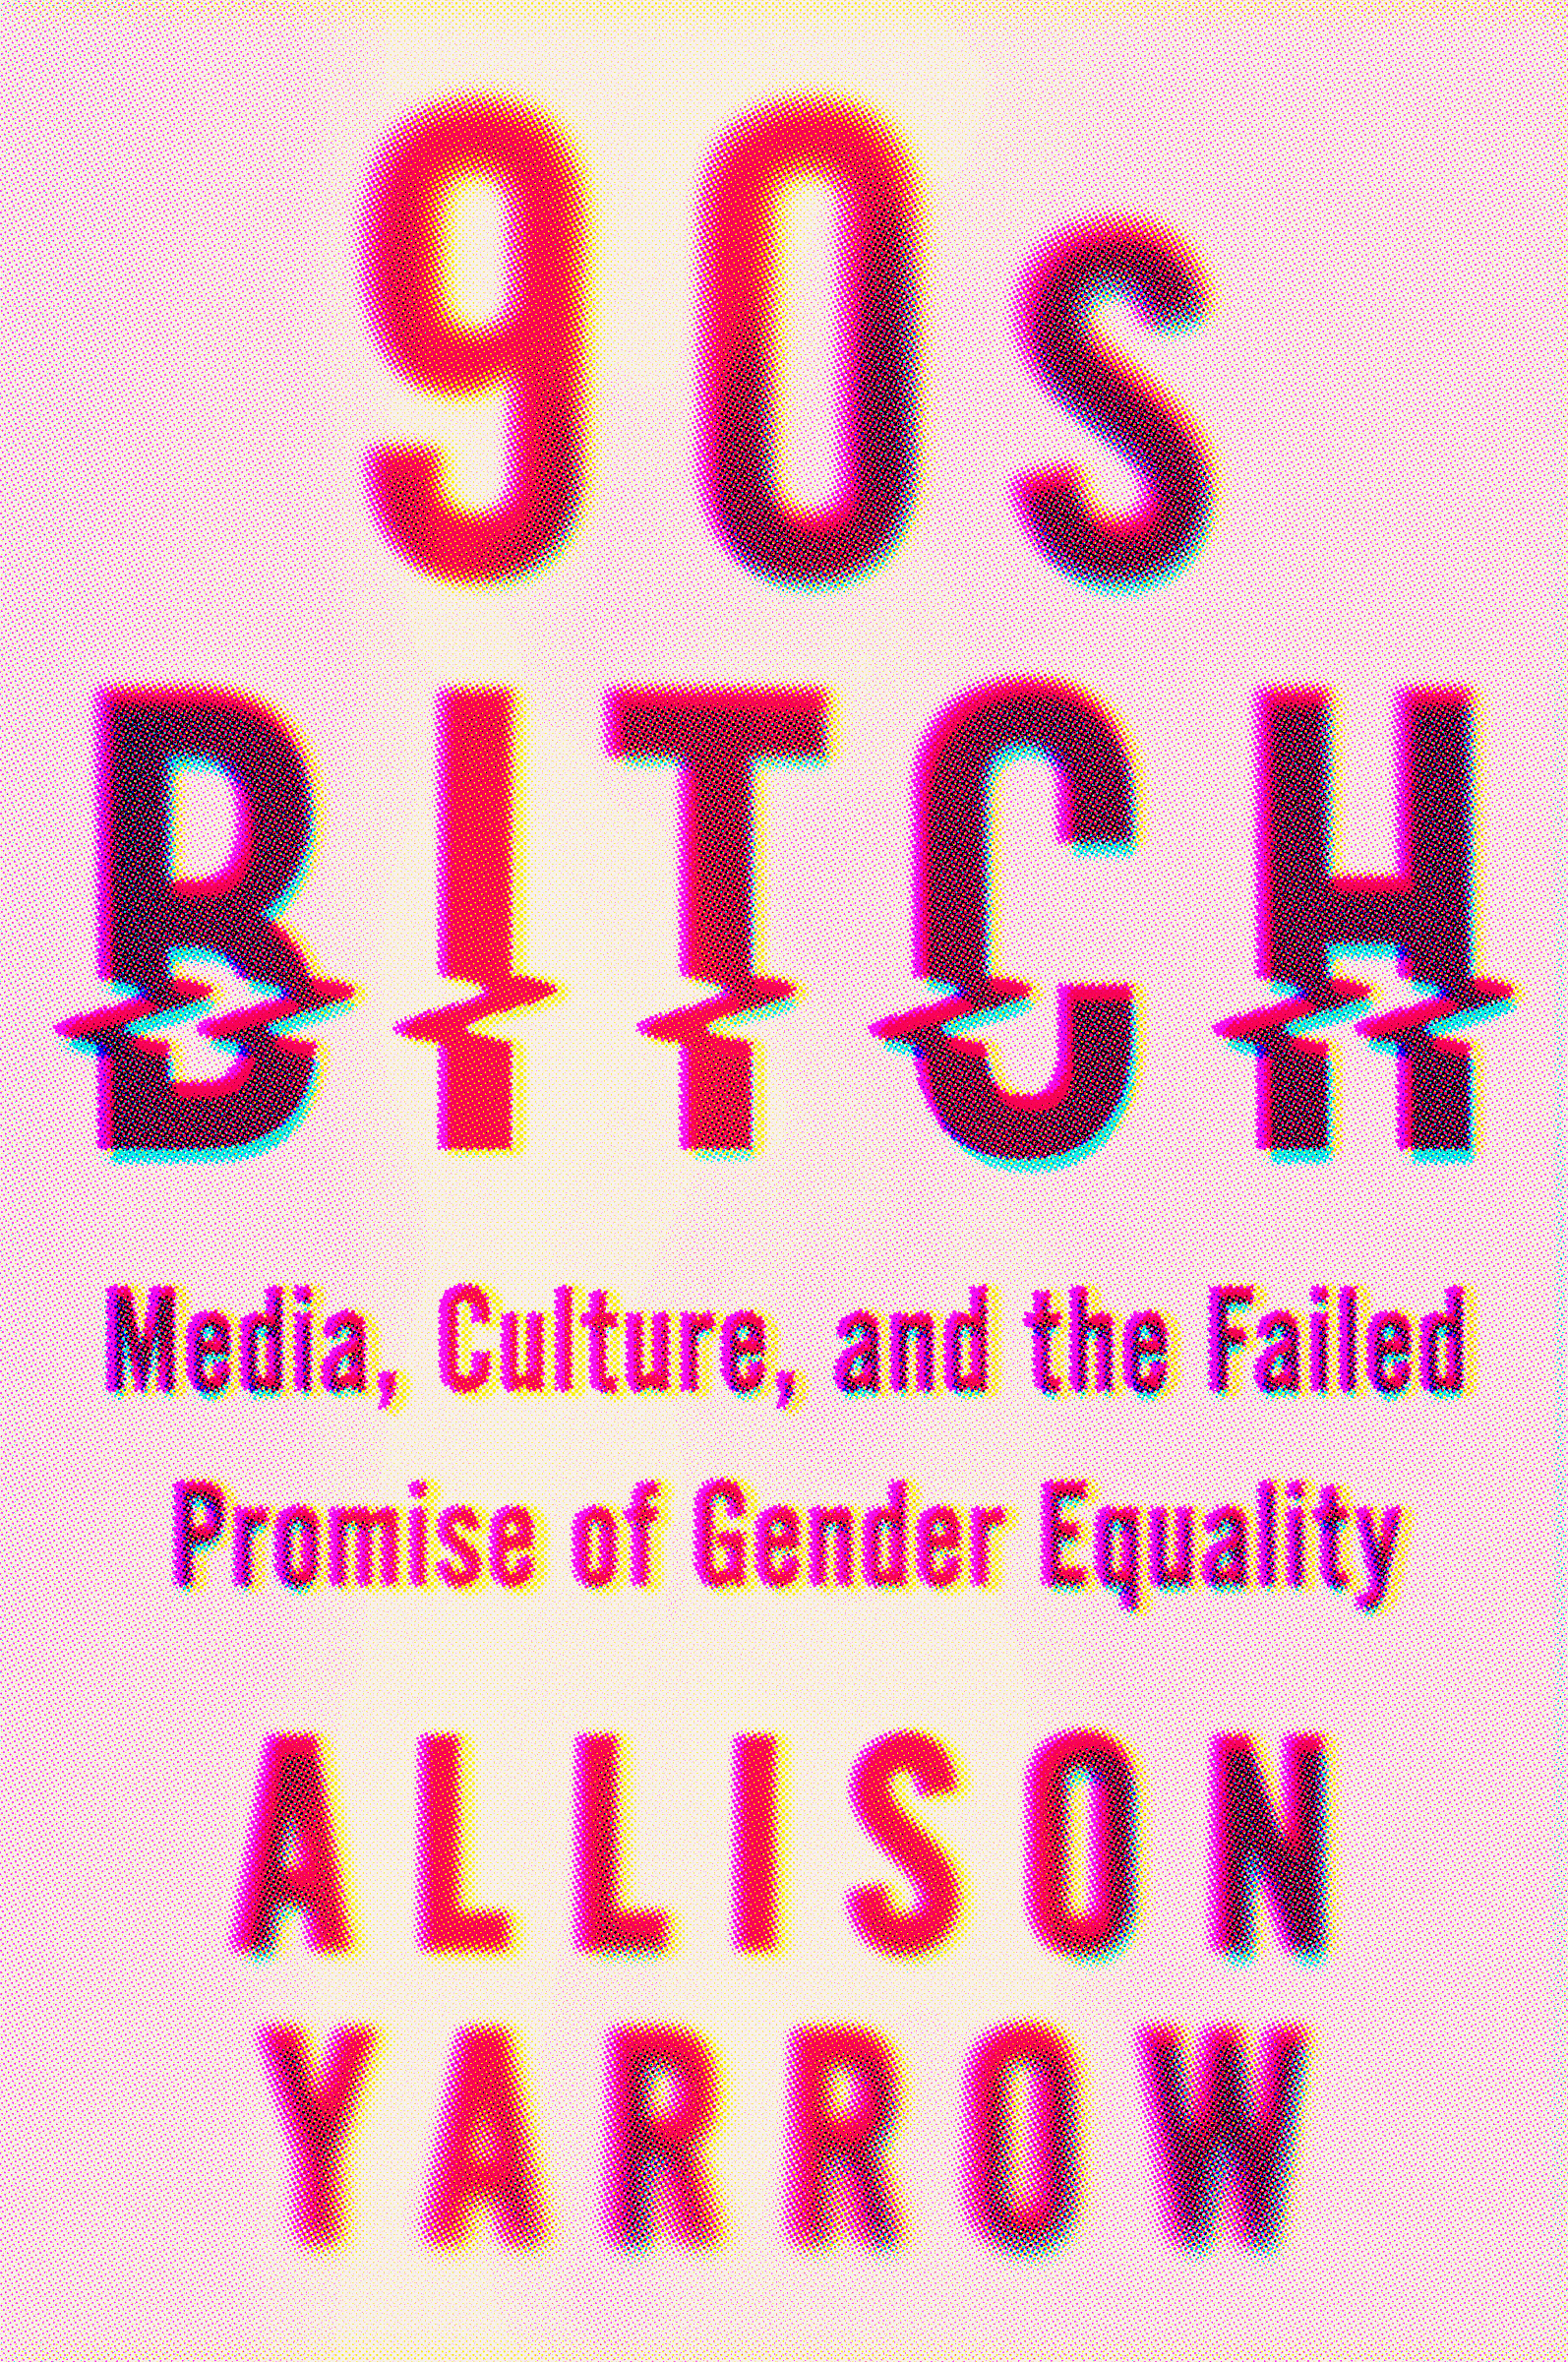 90s Bitch: Media, Culture, and the Failed Promise of Gender Equality (Harper Perennial, 2018).